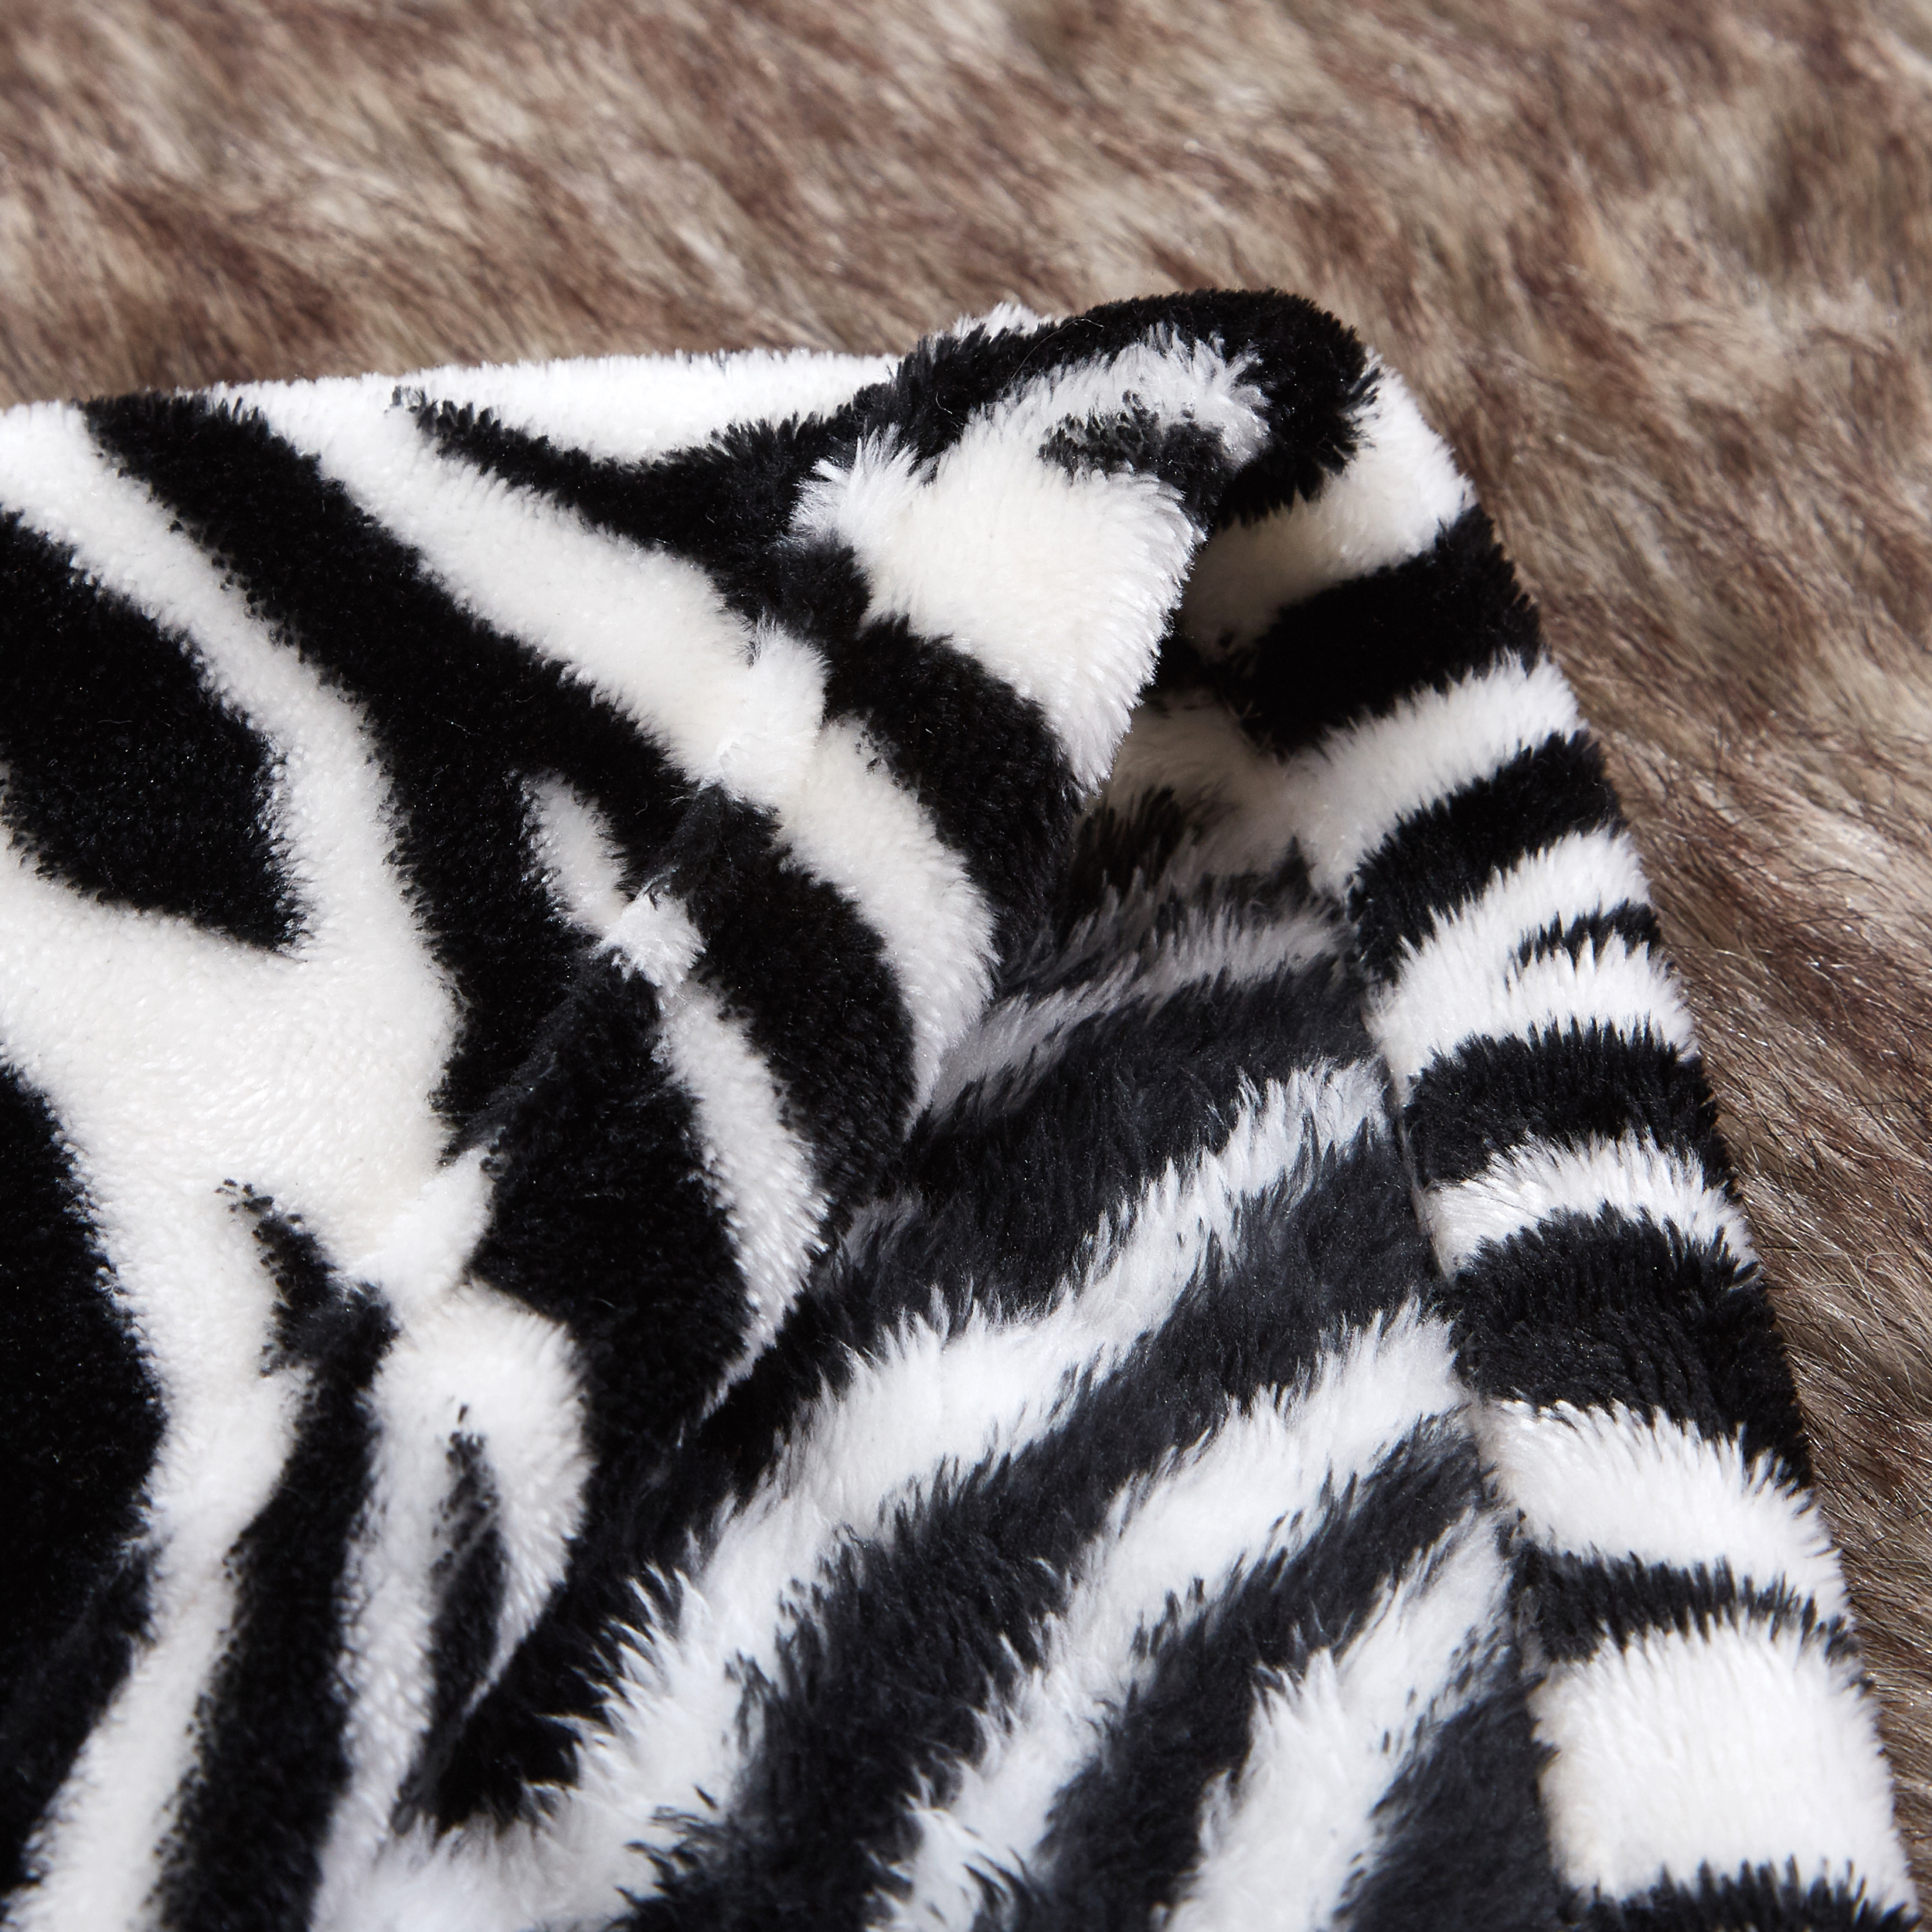 Merrylife Throw Blankets for Sofa bed Pattern Print Striped Cheetah Zebra Home Textile Flannel Plush Soft Travel Oversized-3